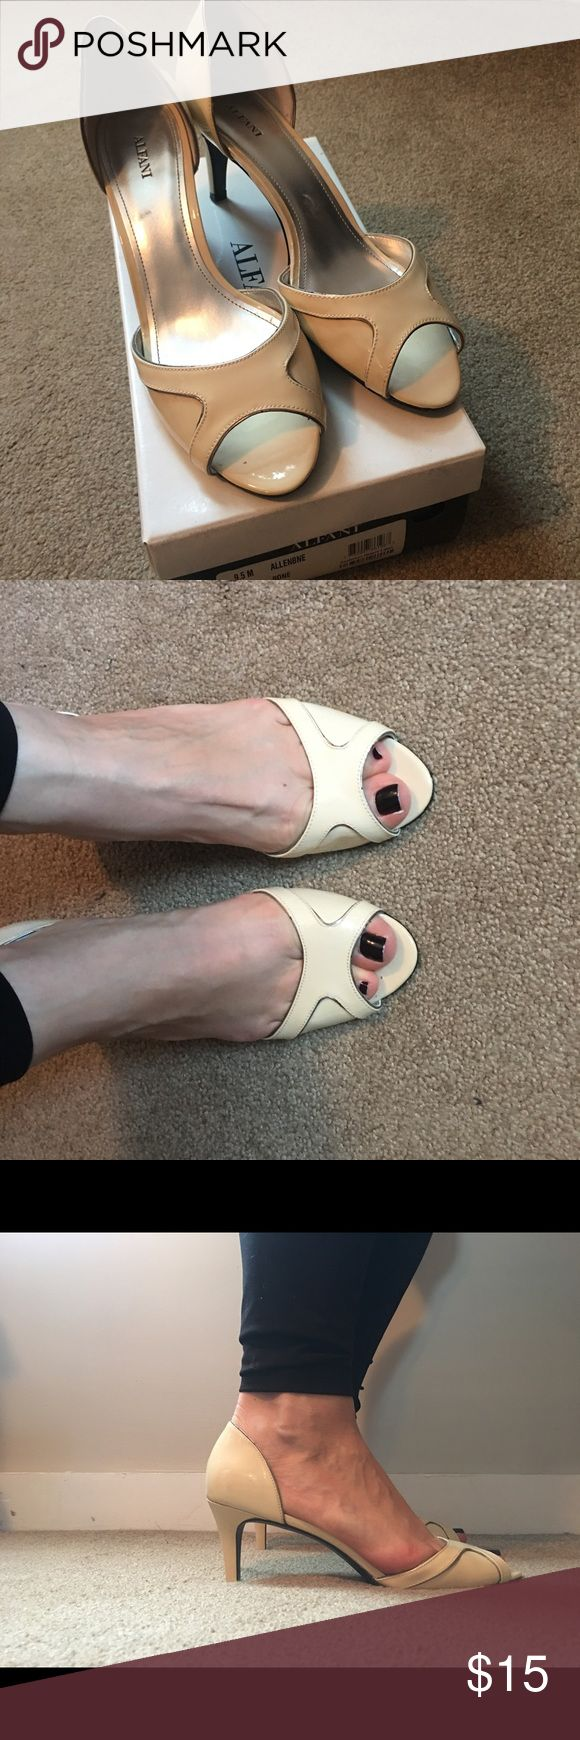 Alfani size 9.5 peep toe heels bone color Worn once! Only selling because the are too snug post baby.  Gorgeous bone color - photos don't do these justice.   Comes with original box.  Smoke free home.   Clearing out lots of shoes- take advantage of bundles! Alfani Shoes Heels